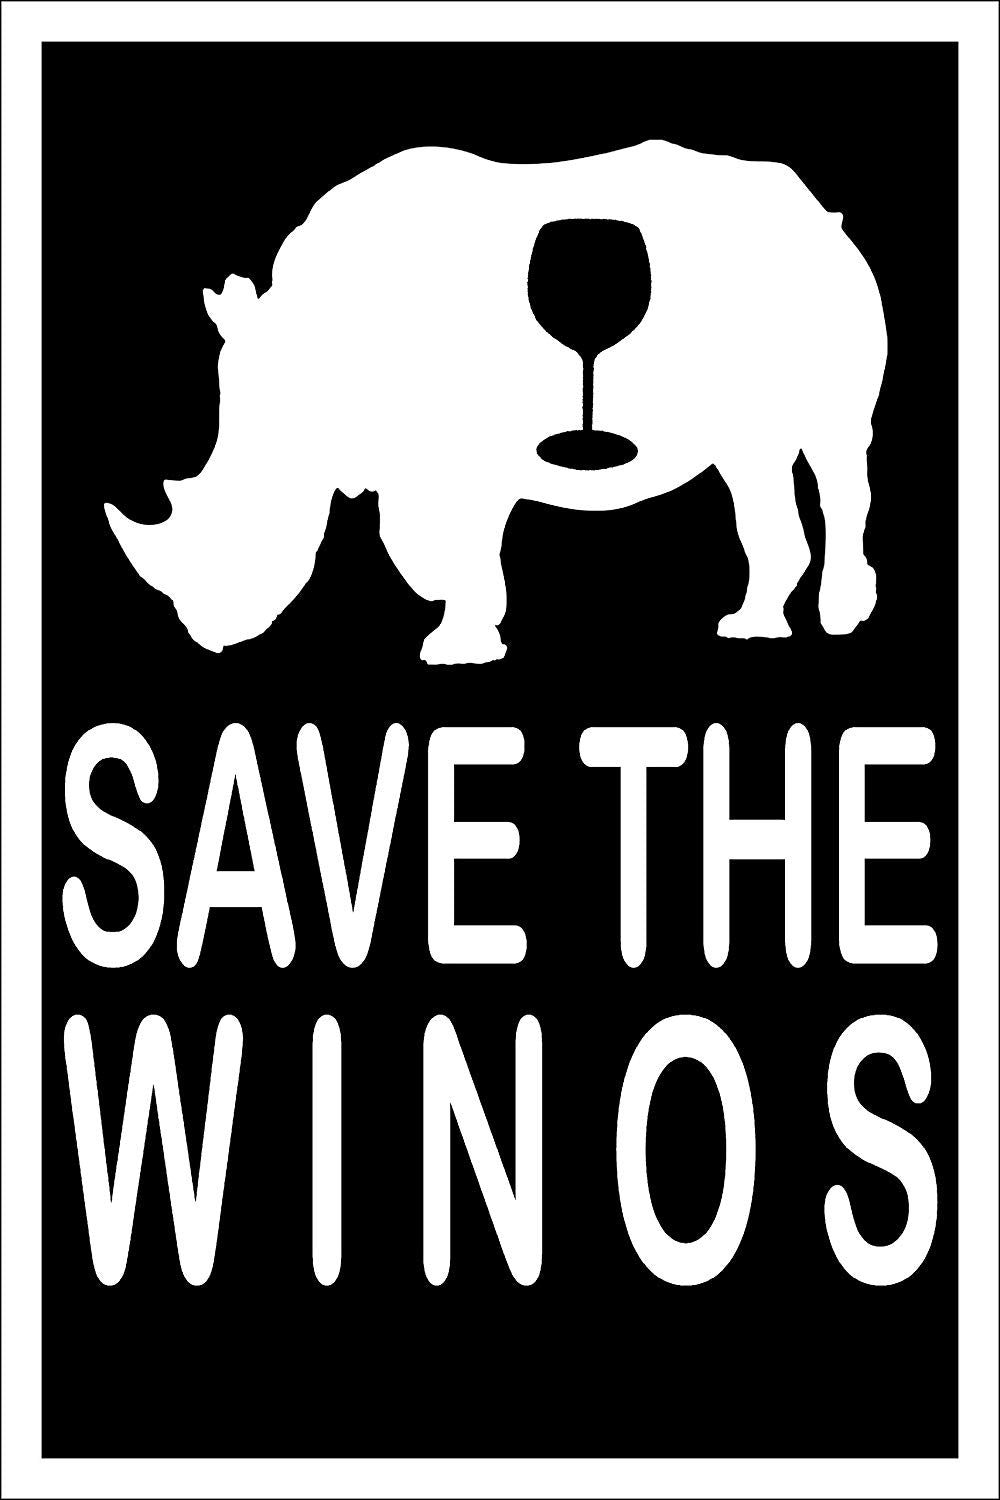 "Spitzy's Save The Winos Funny Wine Tasting Pun Poster for Home (12"" x 18"" Dimensions Include a White .5"" Border)"